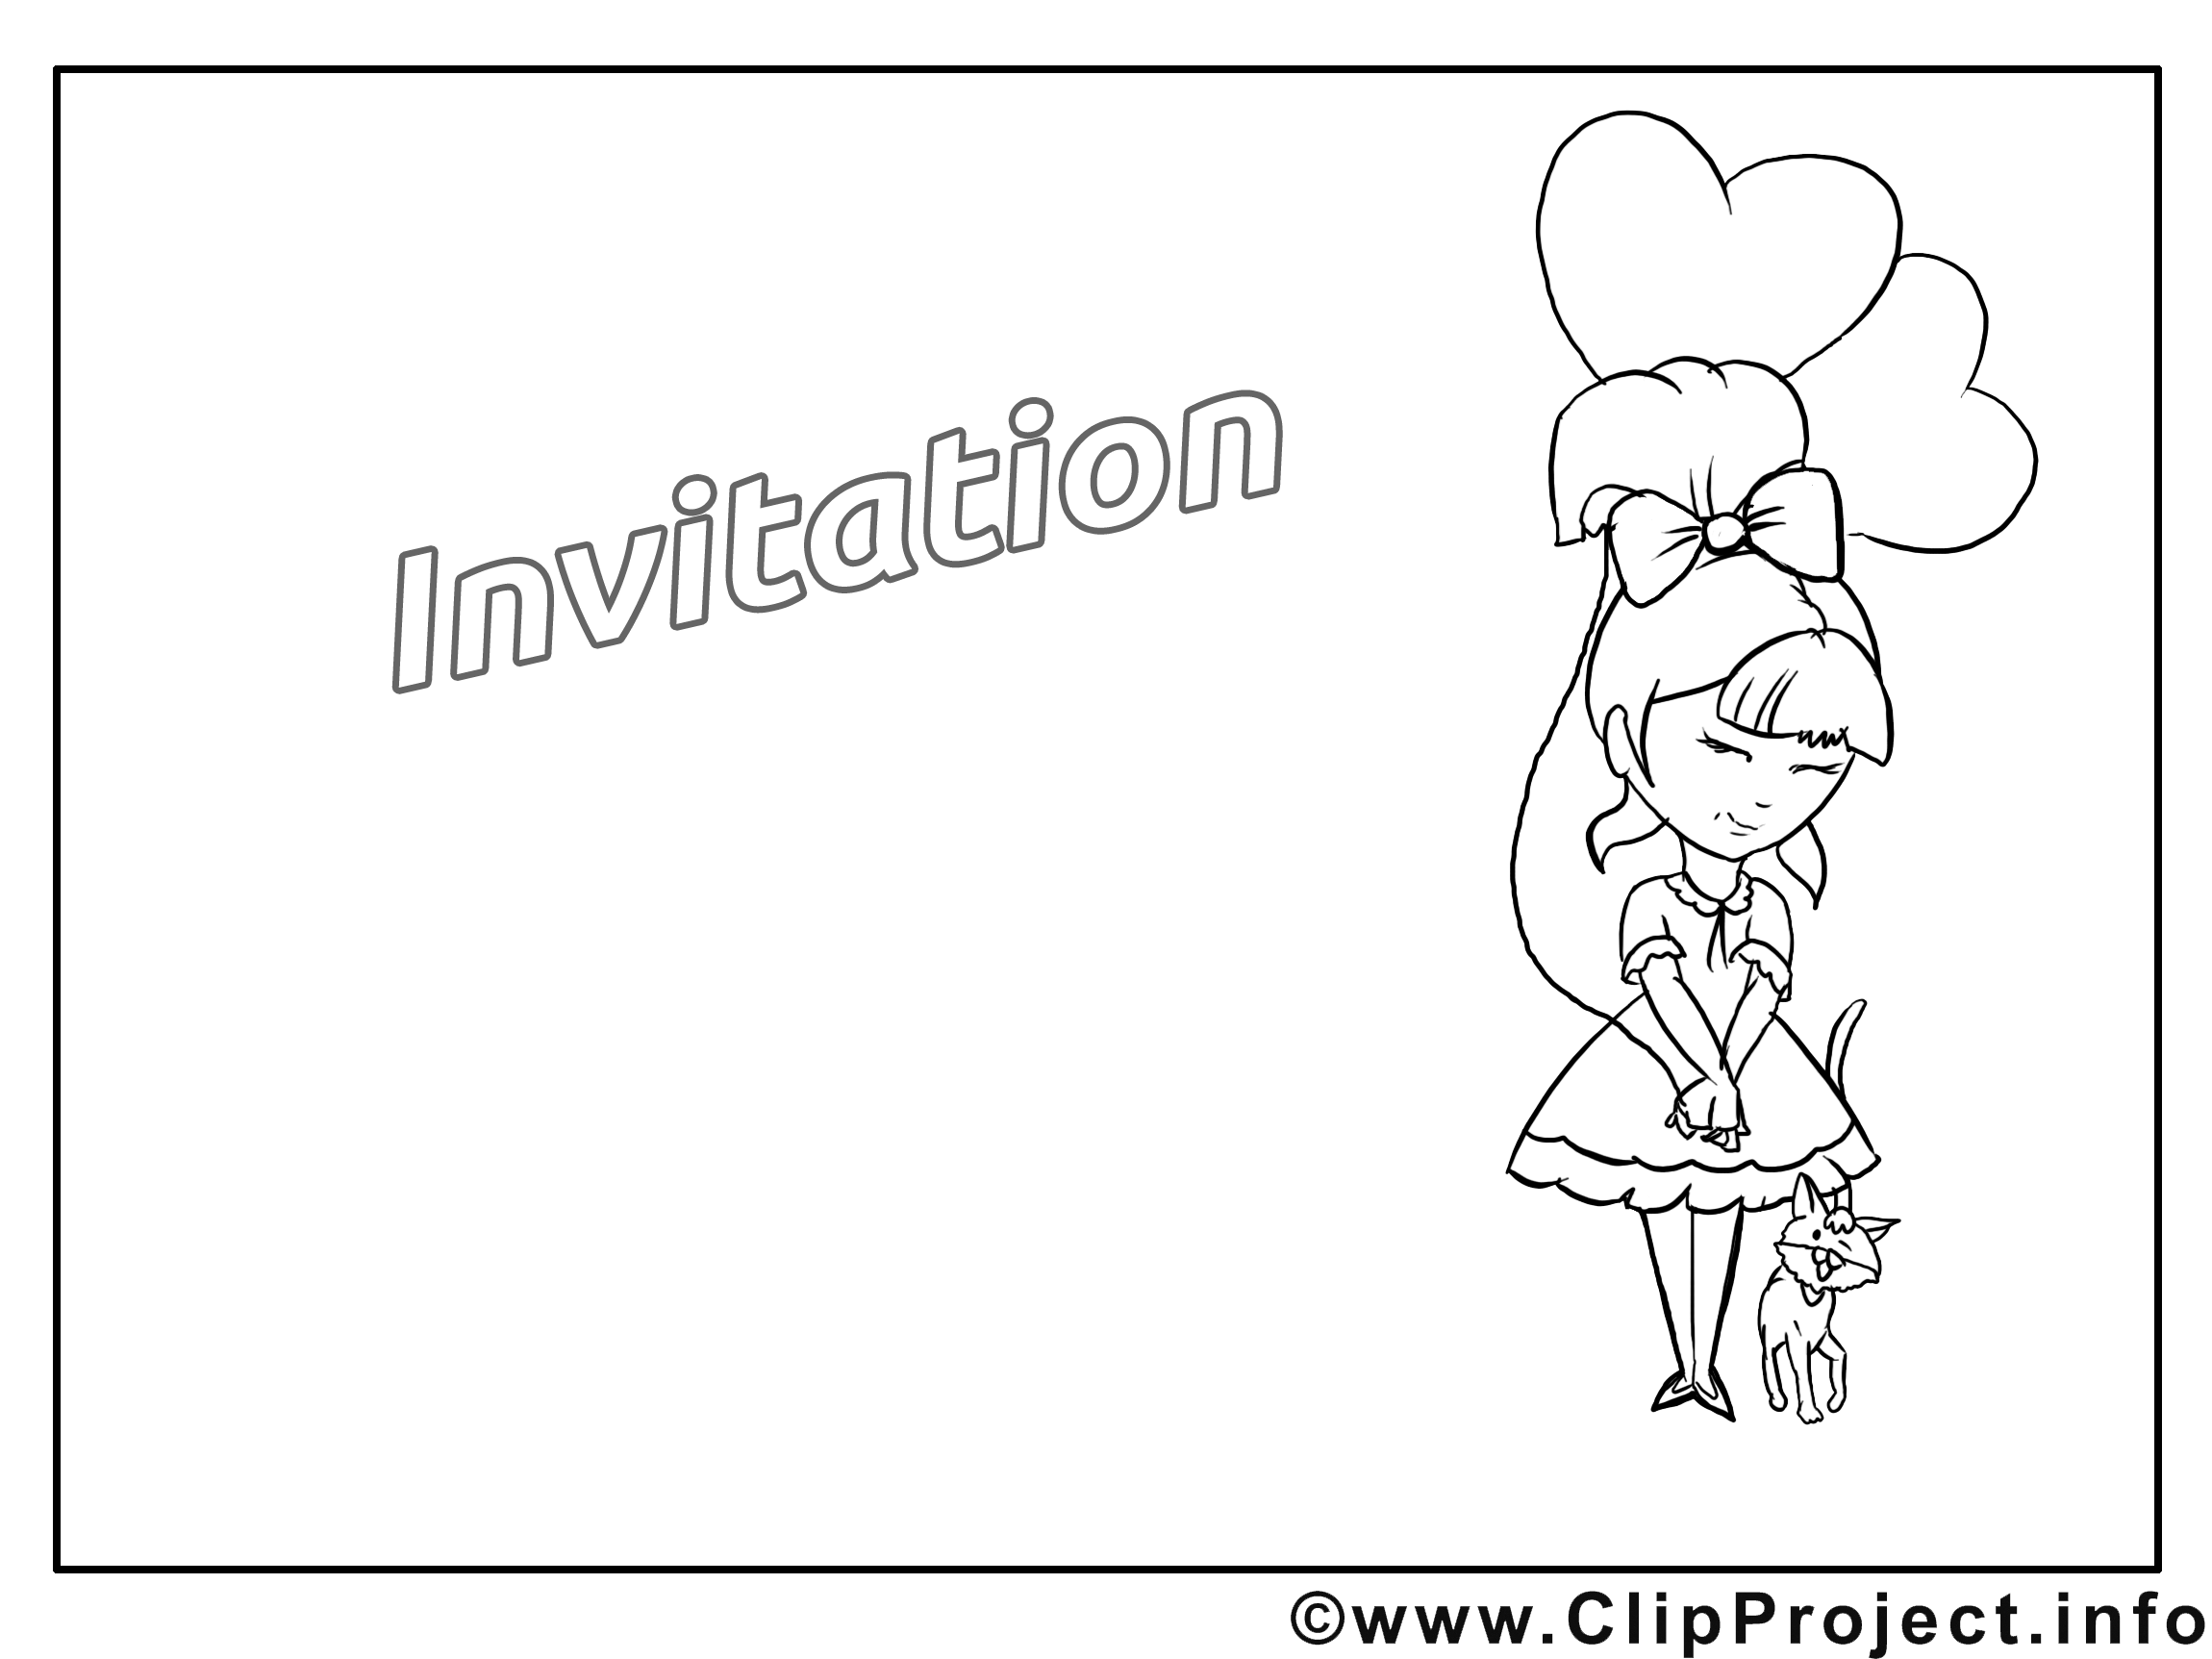 Fille dessin à colorier - Invitation à télécharger